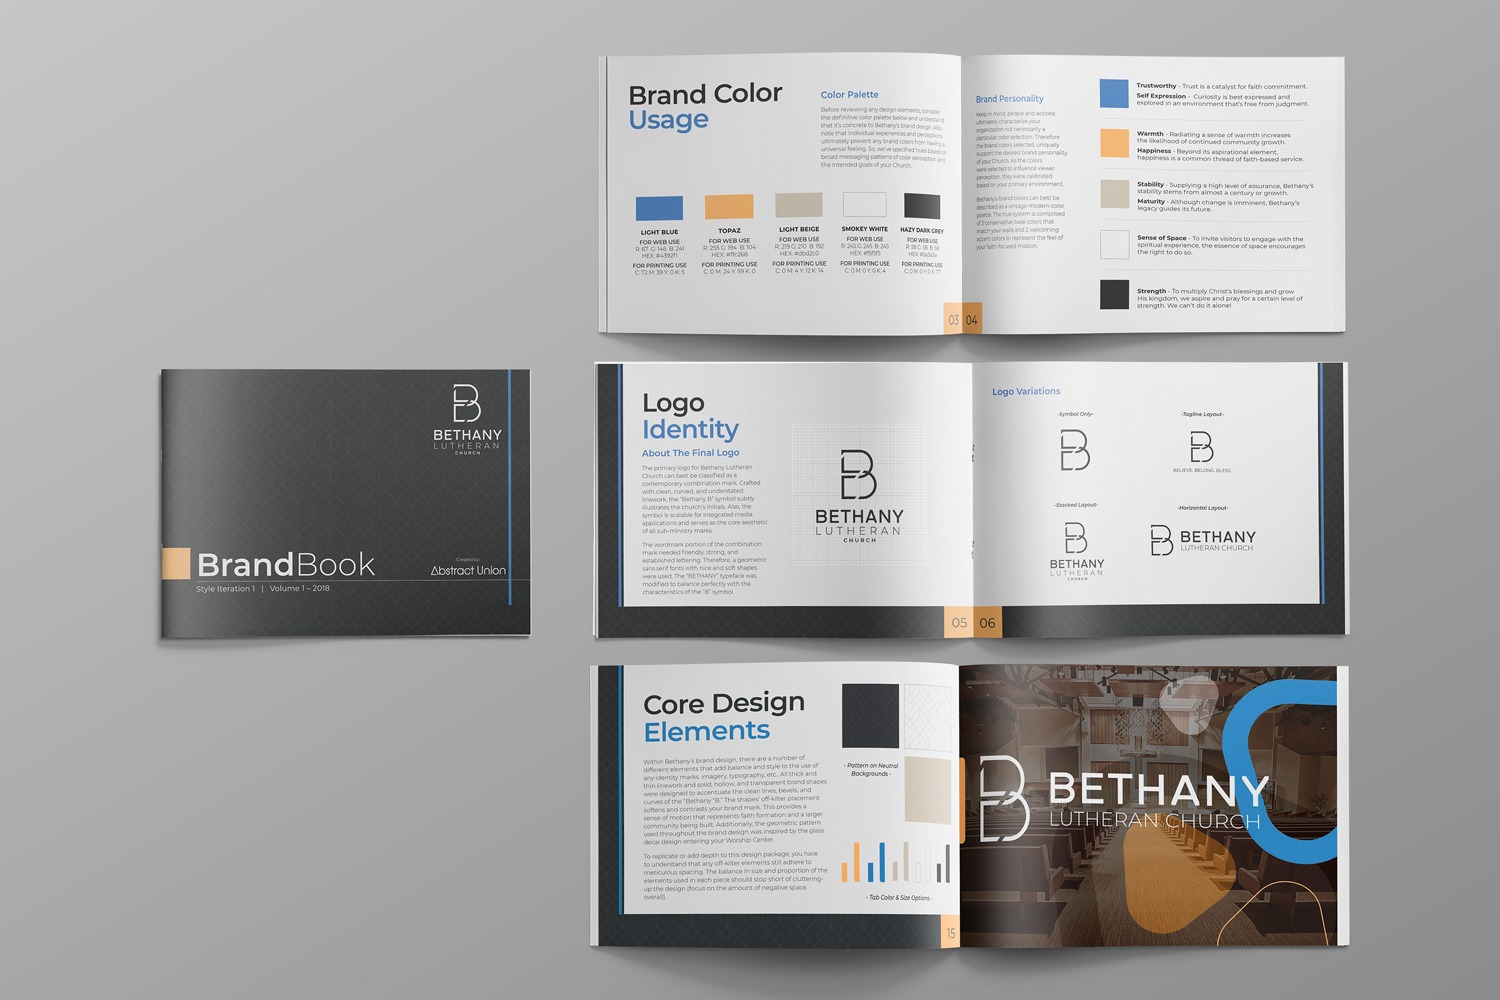 Church brand guidelines book for Ministry branding guide pdf design, colors, logo